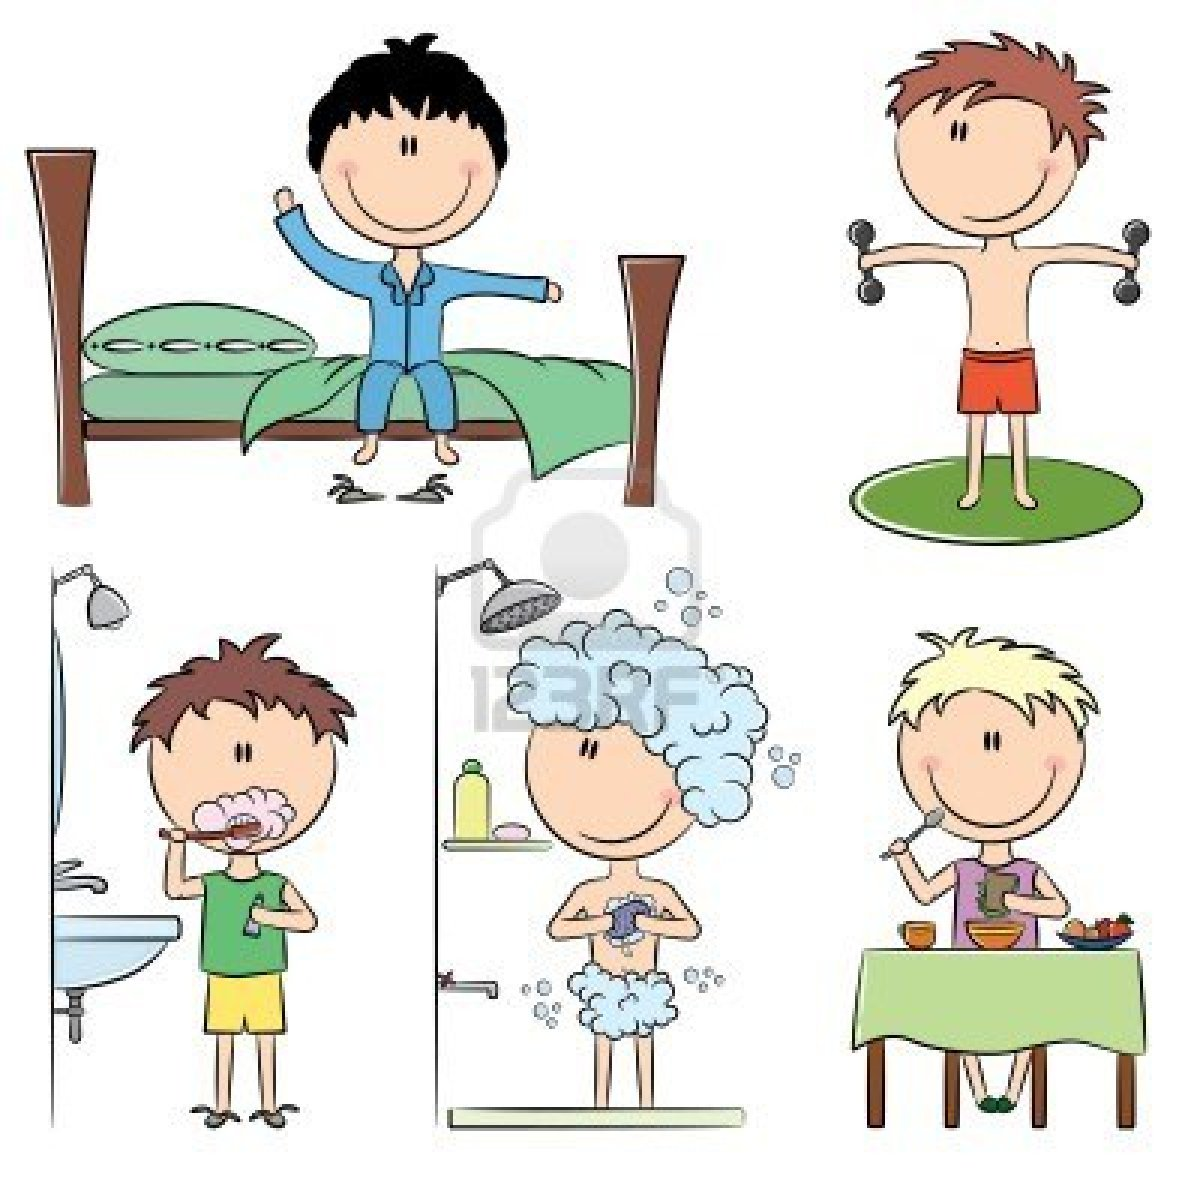 8663576-daily-morning-boys-life-including-wake-up-morning-exercises-teeth-cleaning-shower-and-breakfast